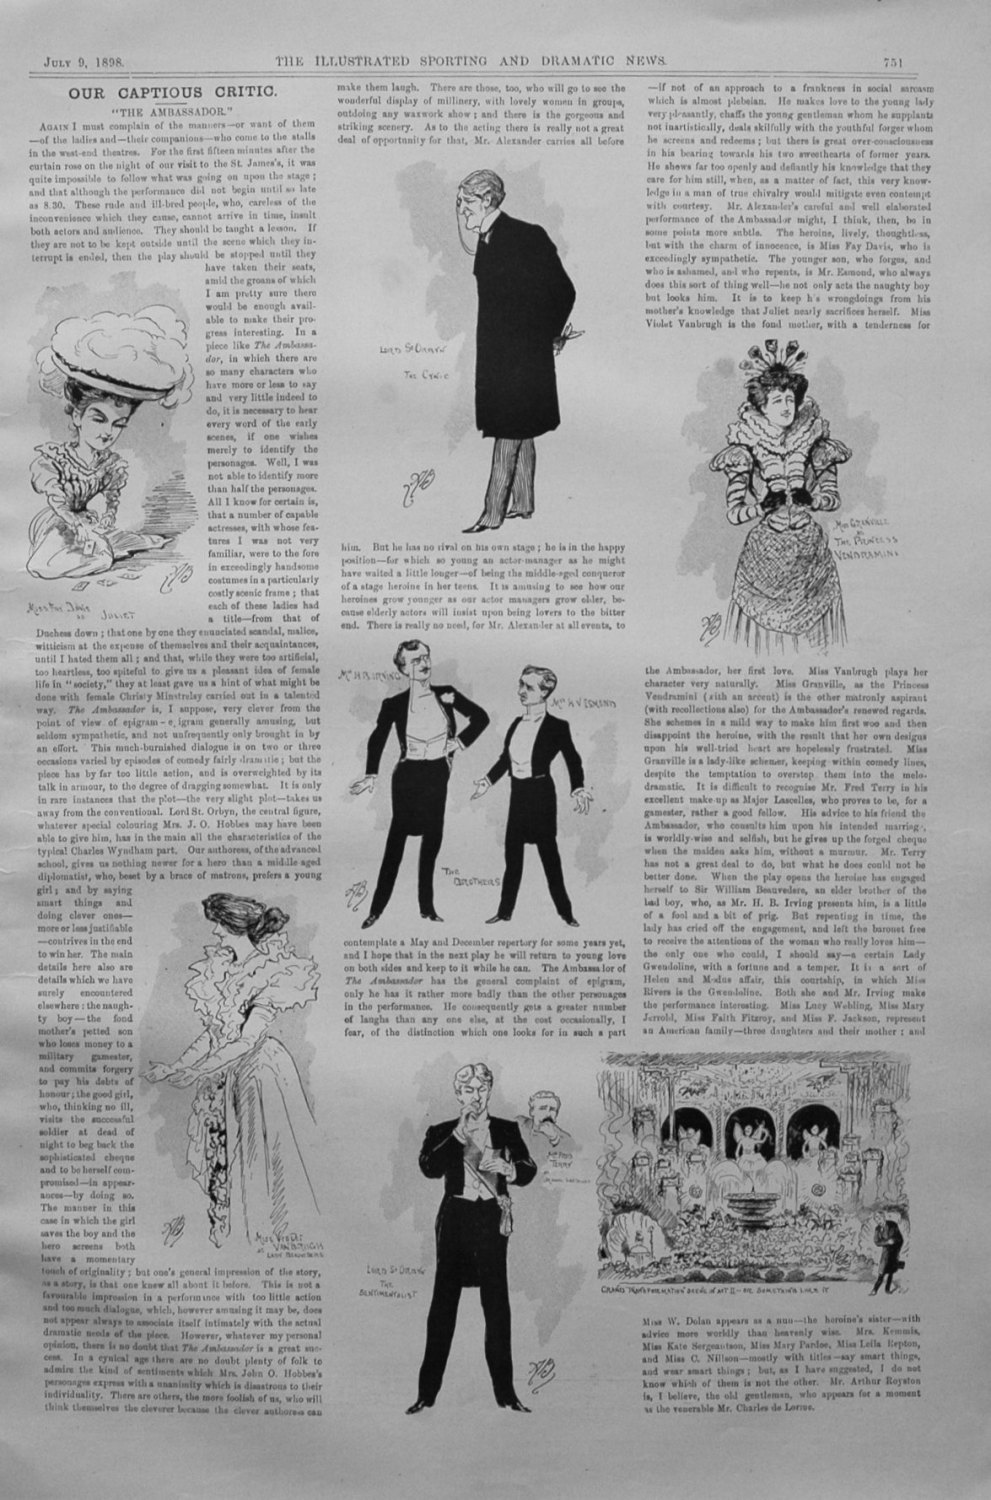 Our Captious Critic, July 9th 1898.